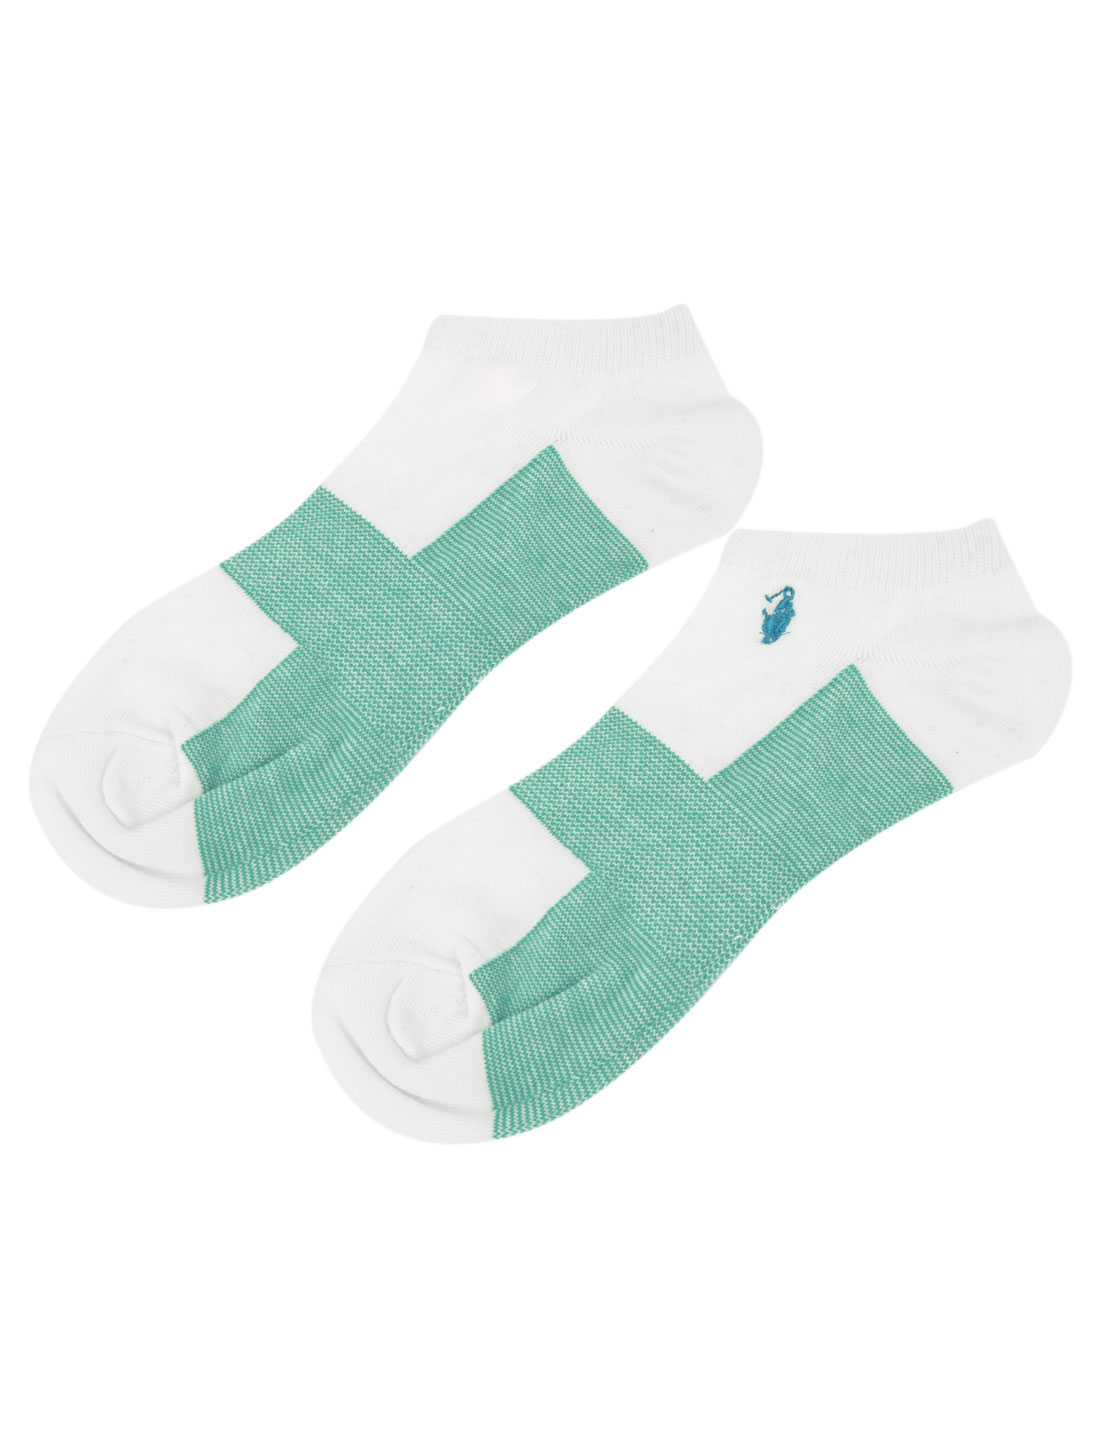 Pair White Green Color Block Stretchy Cuff Ankle Socks Sockings for Men